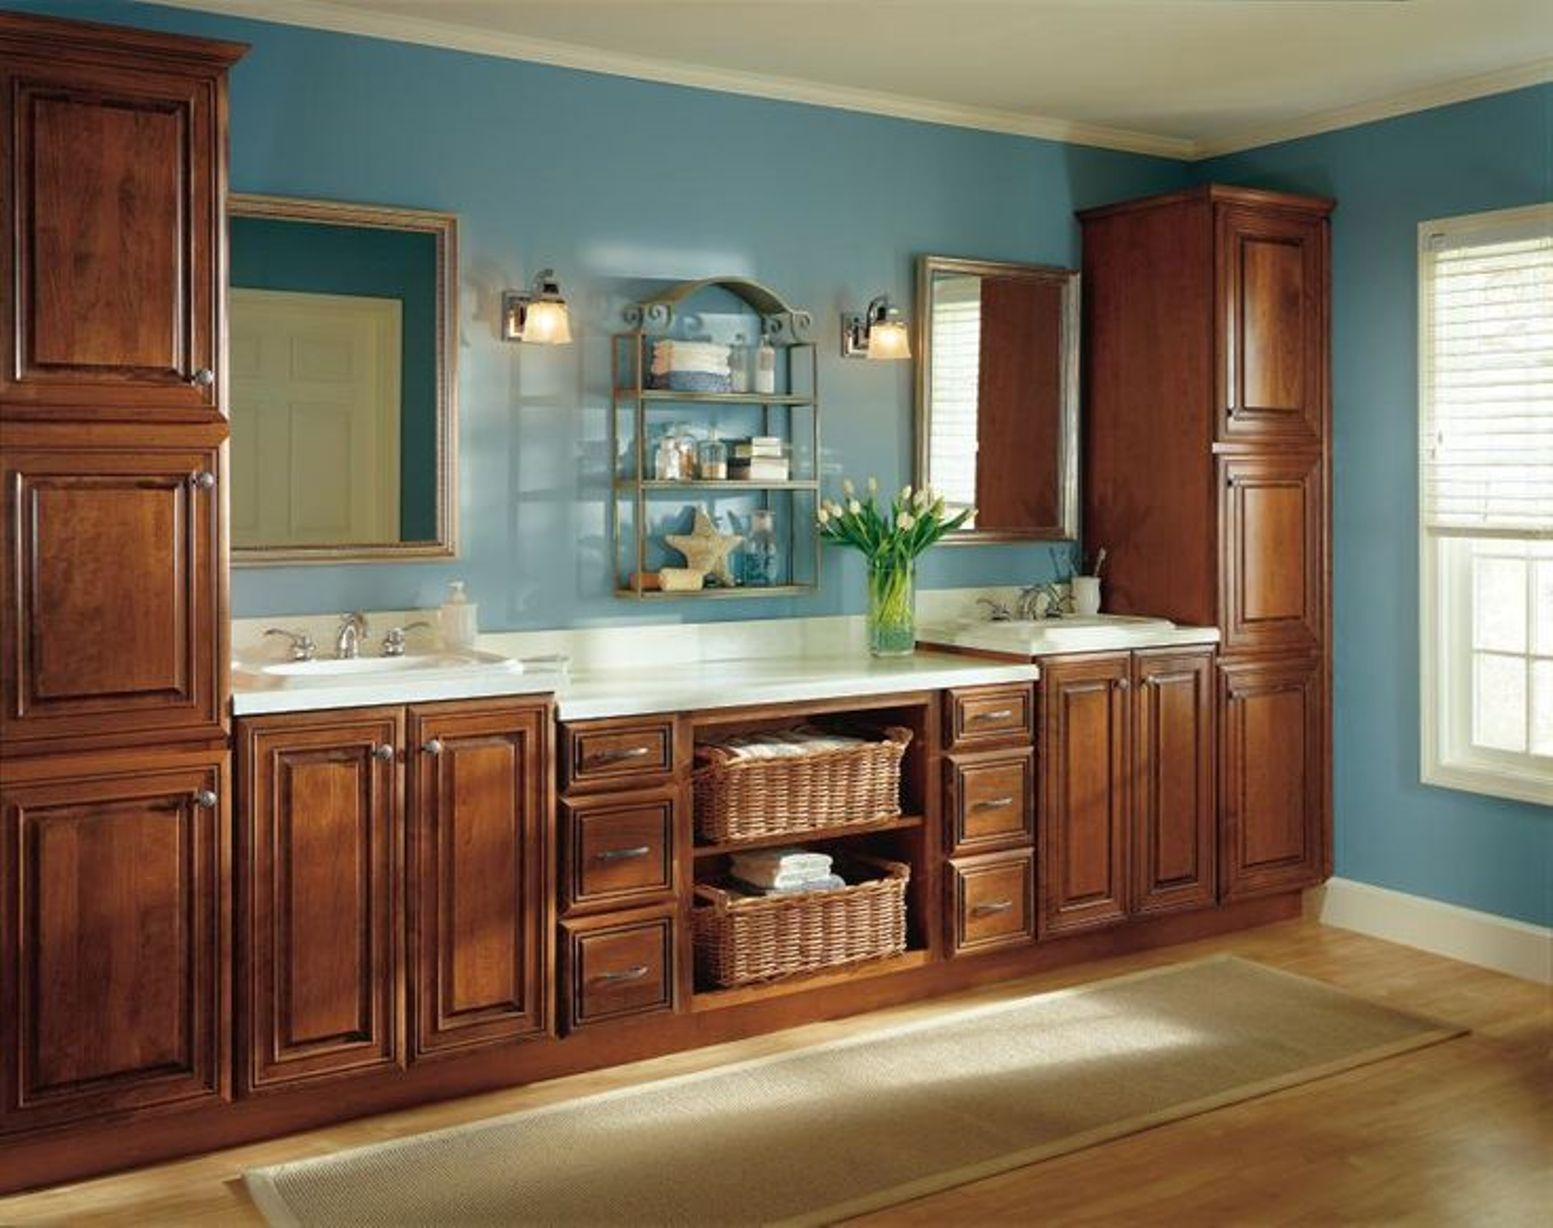 Permalink to Bathroom Vanity Door Designs